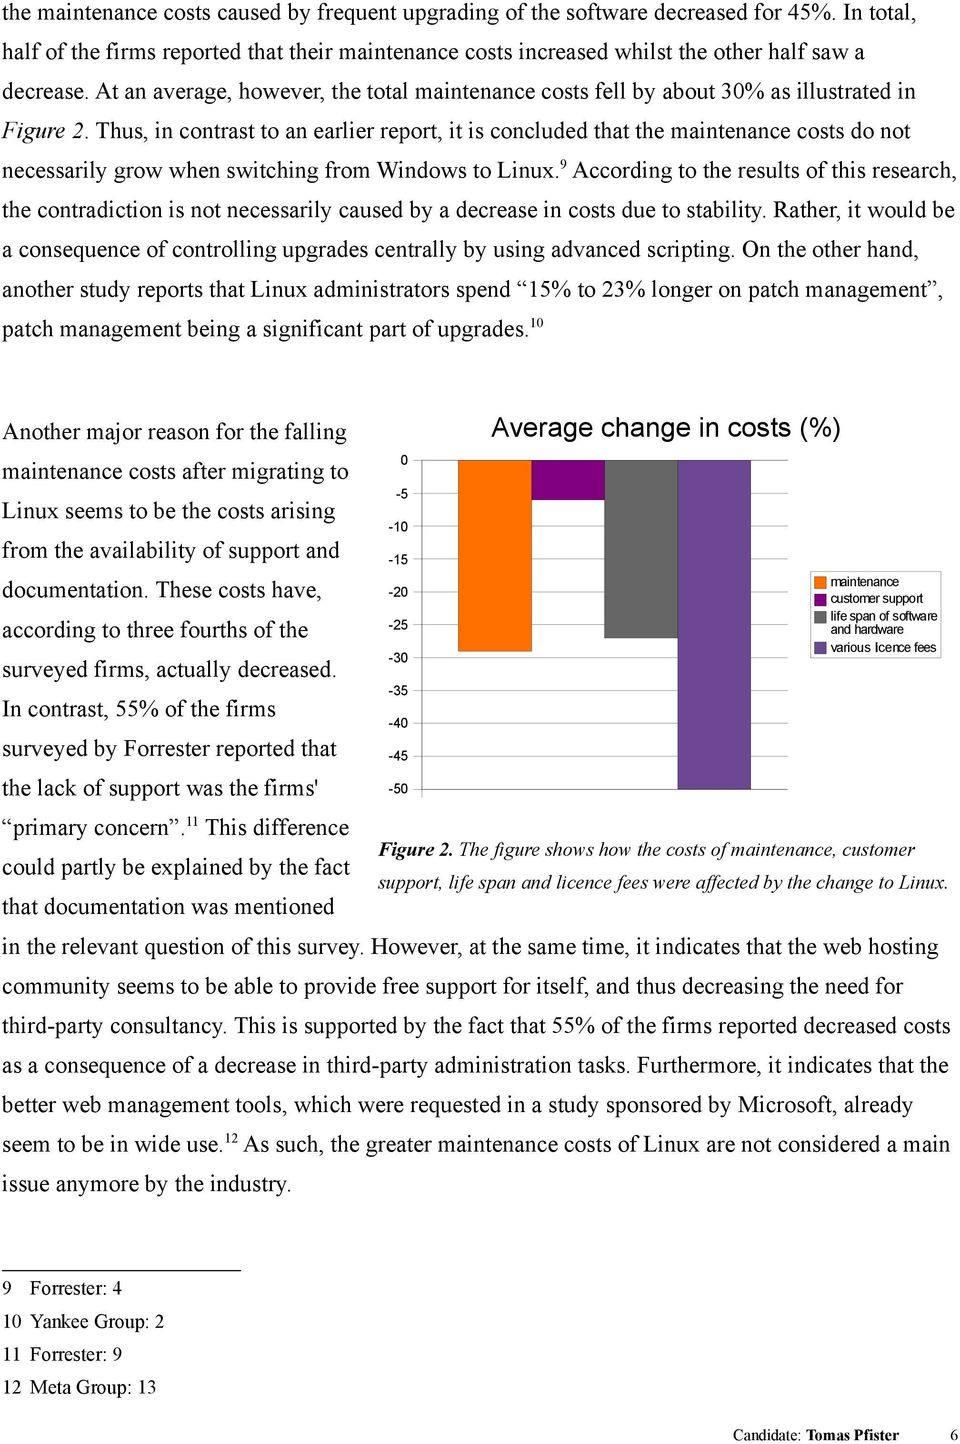 Thus, in contrast to an earlier report, it is concluded that the maintenance costs do not necessarily grow when switching from Windows to Linux.